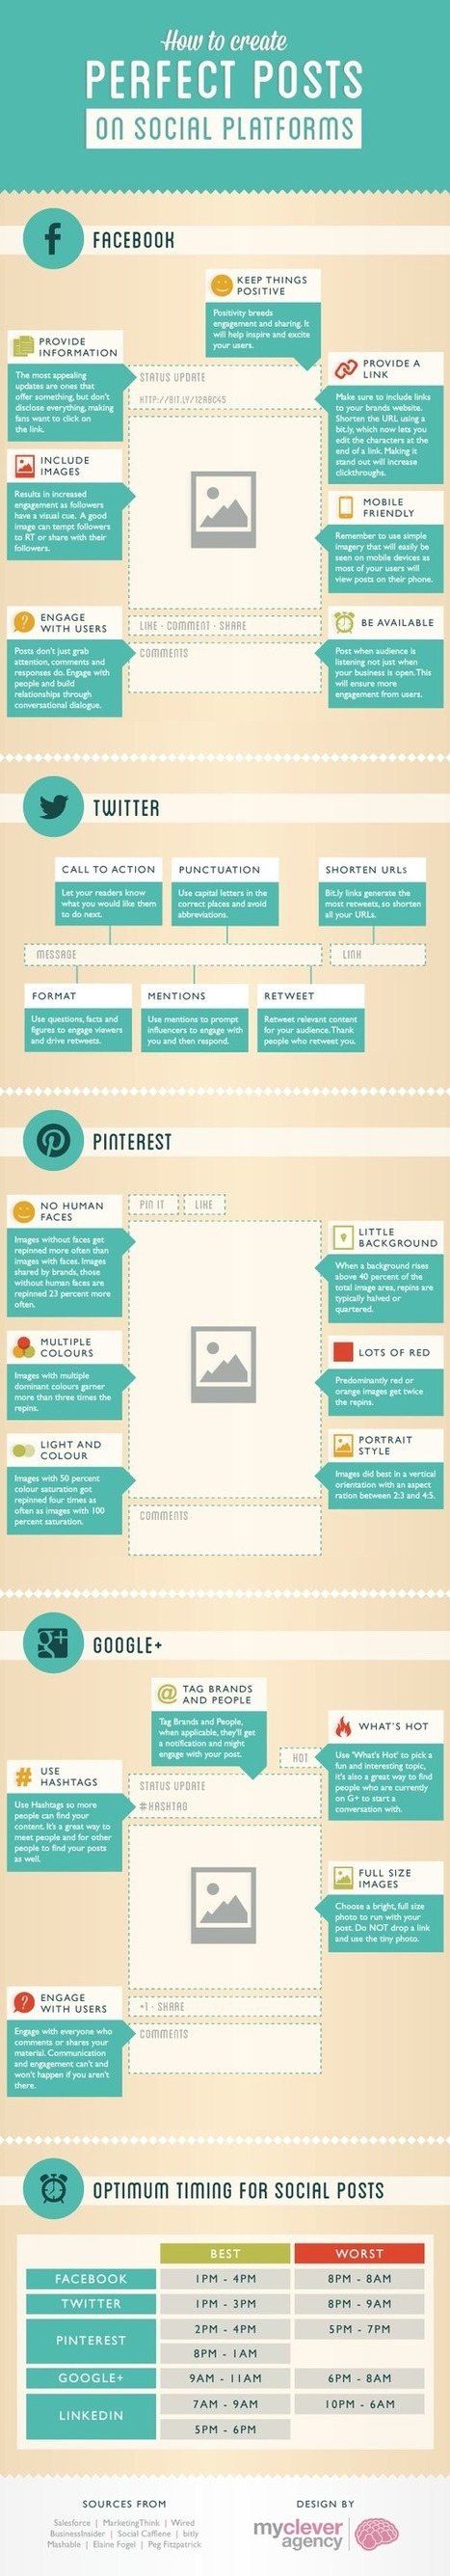 How to Create the Perfect Post on Social Media [INFOGRAPHIC] | social media news | Scoop.it